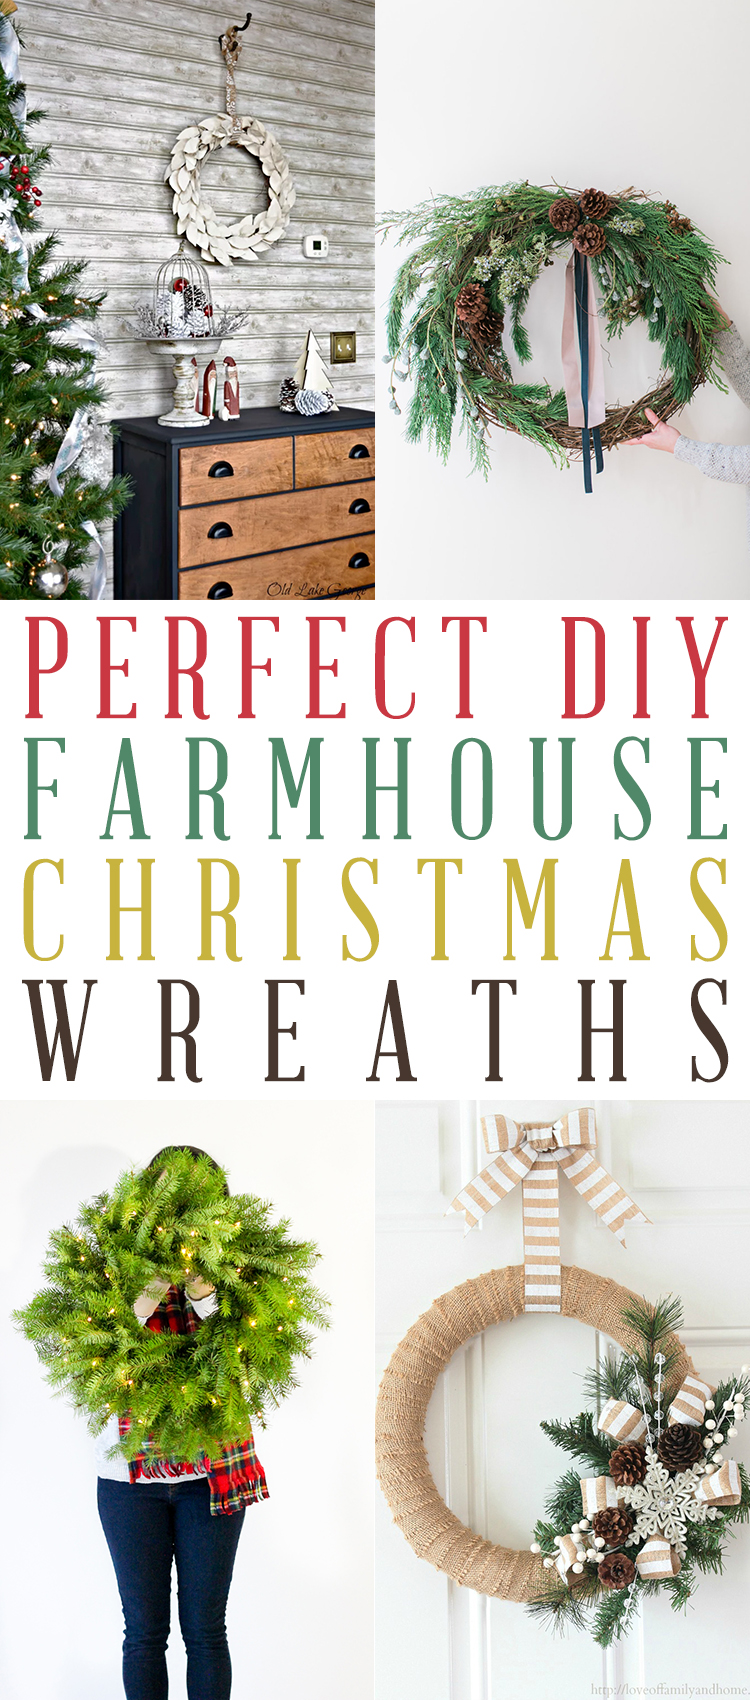 Perfect DIY Farmhouse Christmas Wreaths